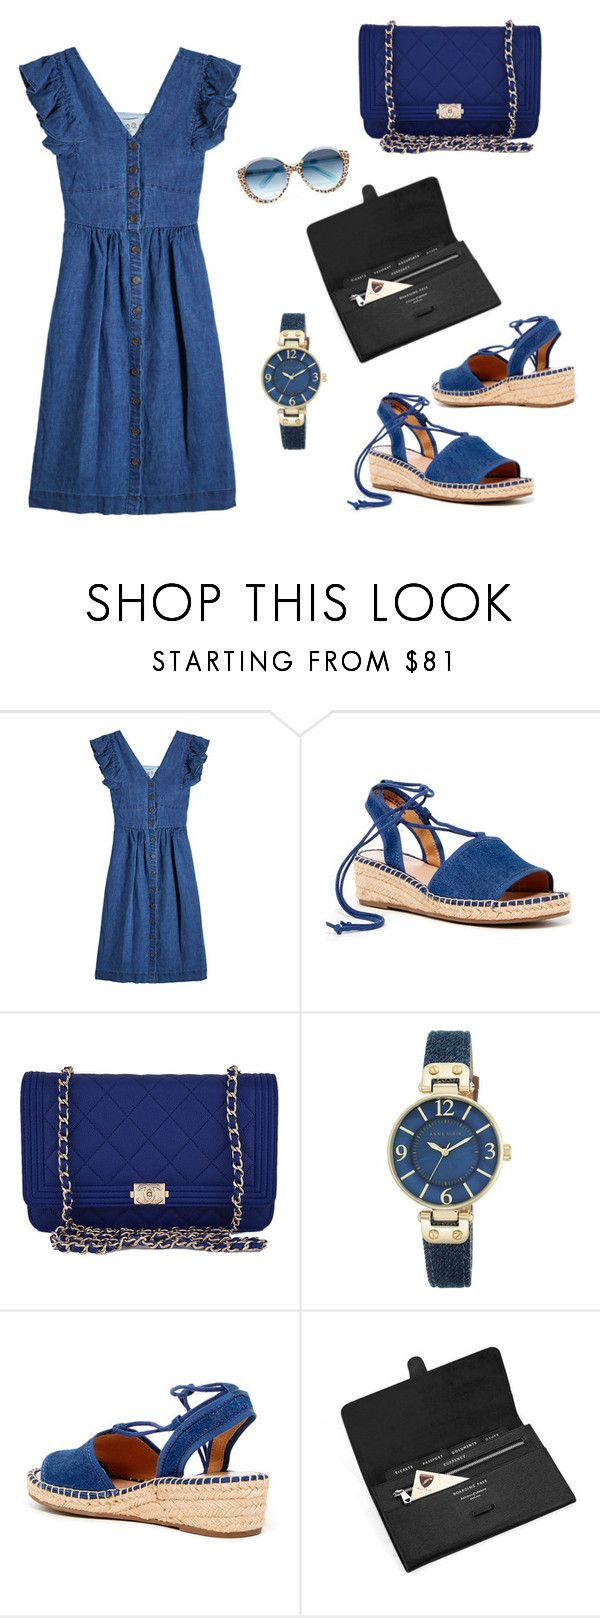 """""""Для ребенка 🙂по просьбе 😉"""" by sararesert ❤ liked on Polyvore featuring Sea, New York, Franco Sarto, Chanel, Anne Klein and Cutler and Gross"""